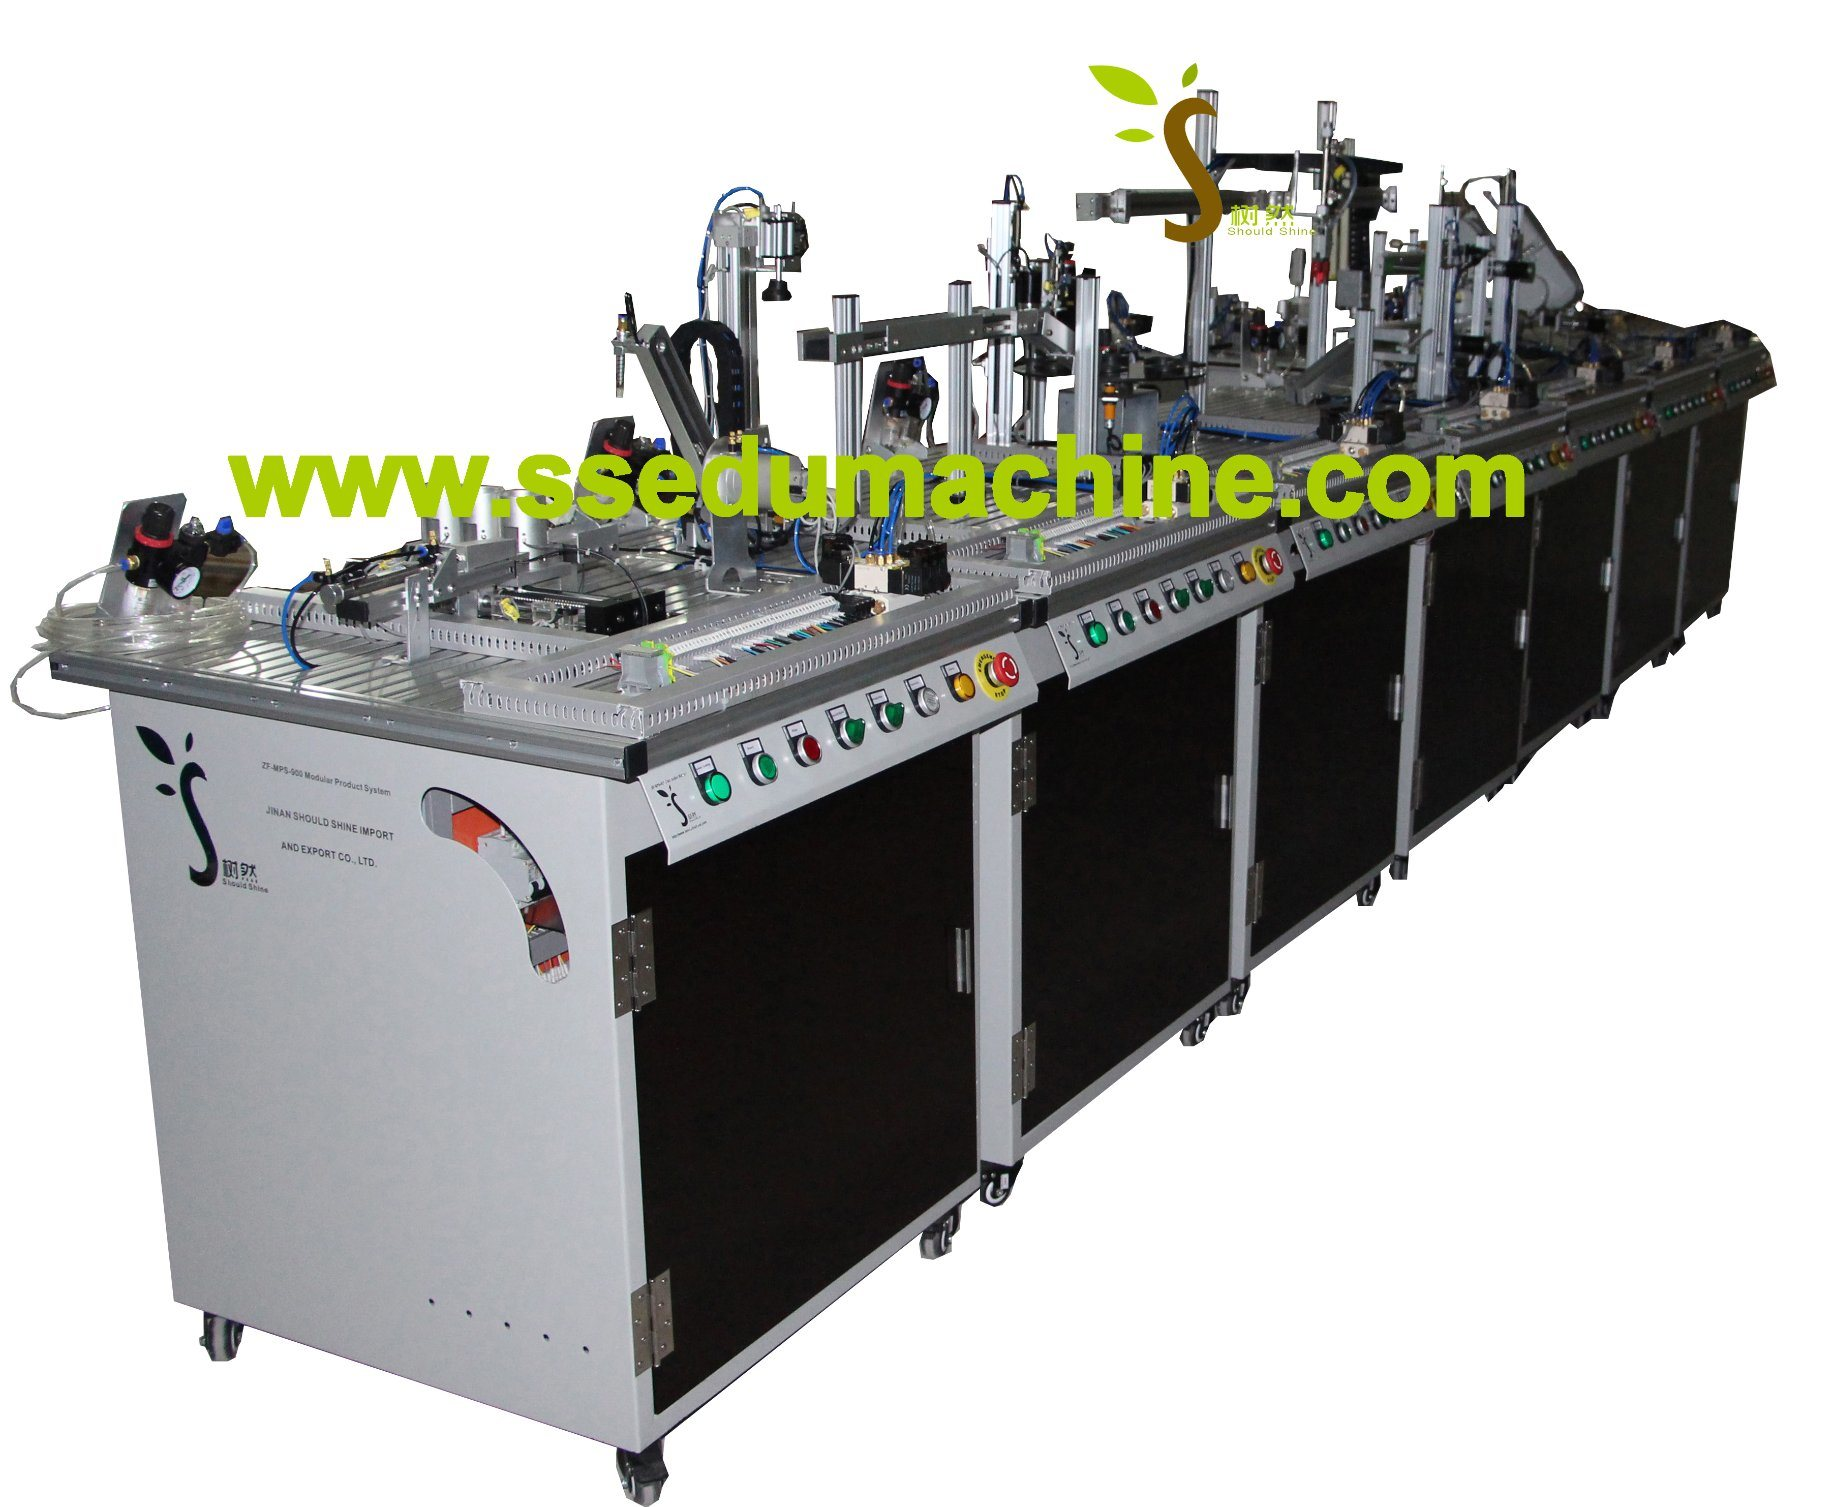 Flexible Manufacture System Mechatronics Training Equipment Mechatronics Trainer Mps